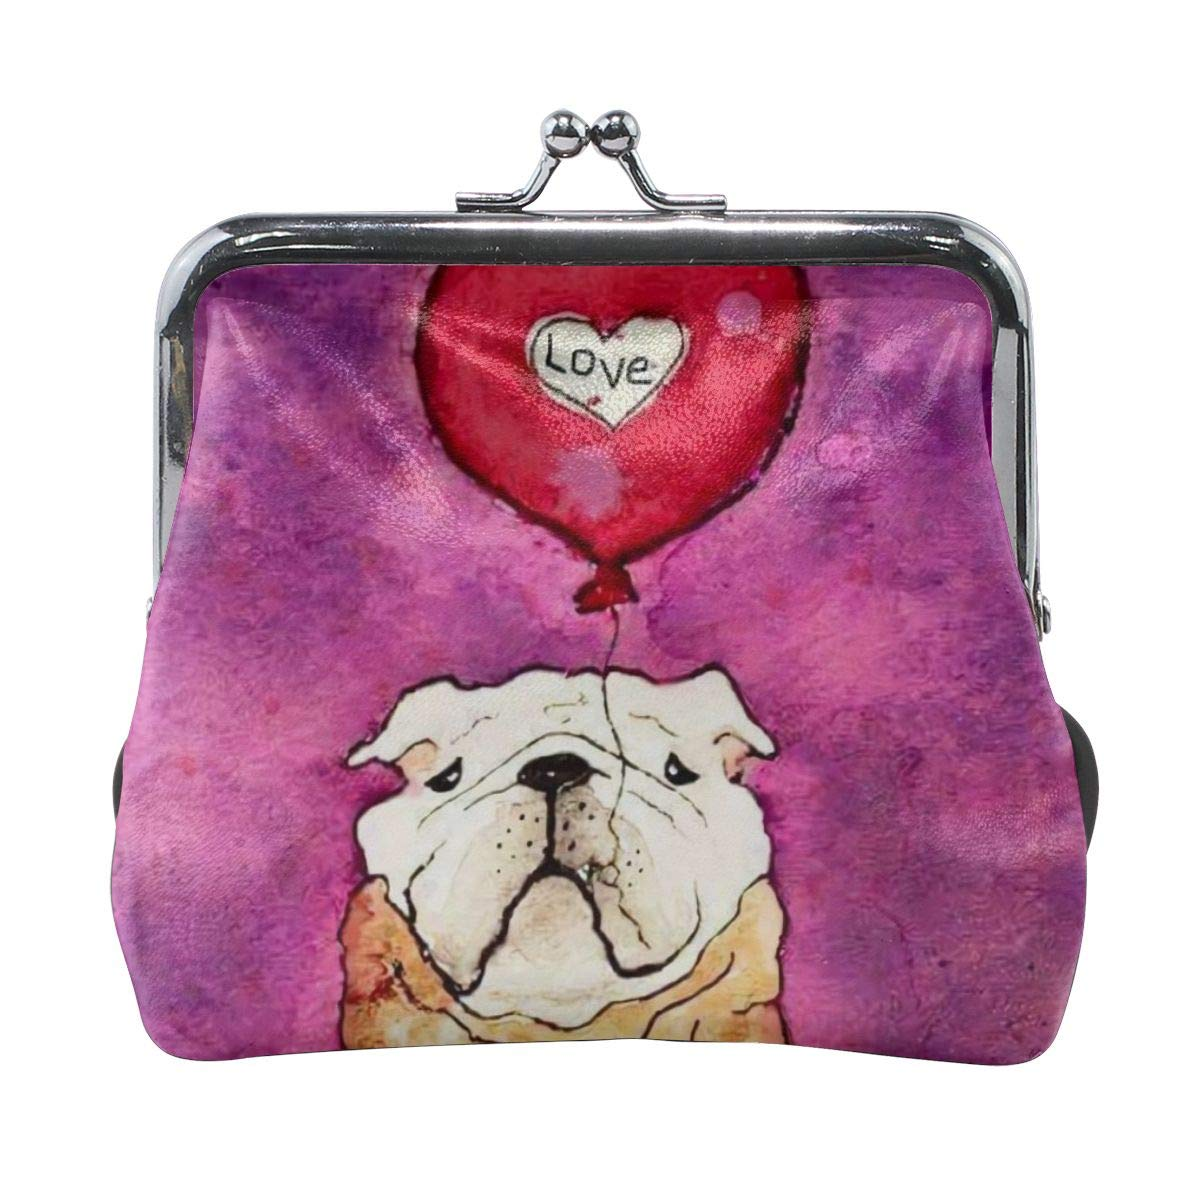 British Bulldog Love Valentines Day Vintage Pouch Girl Kiss-lock Change Purse Wallets Buckle Leather Coin Purses Key Woman Printed